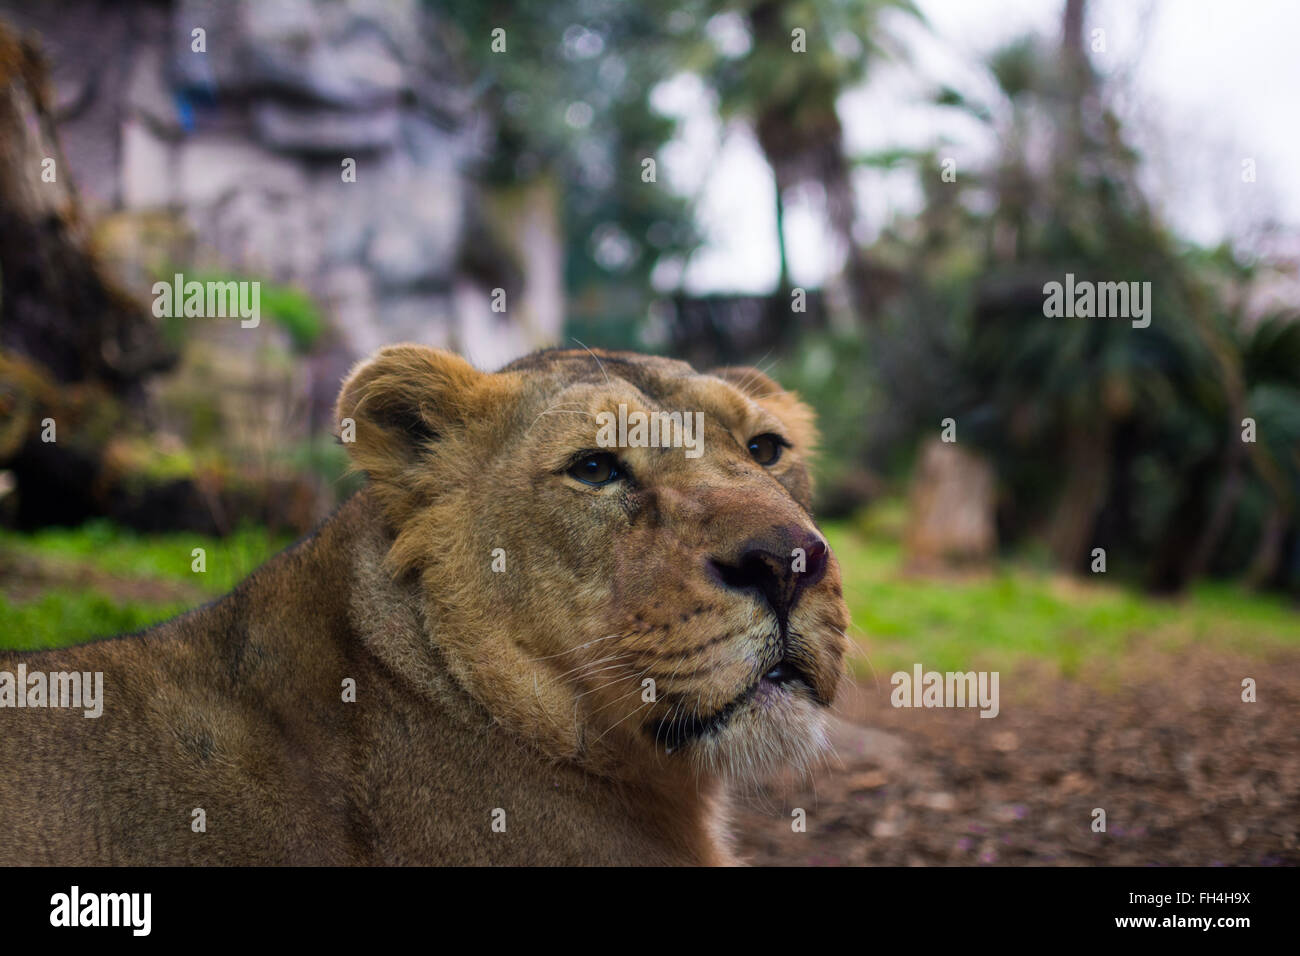 A stoic Lioness surveys her domain. - Stock Image